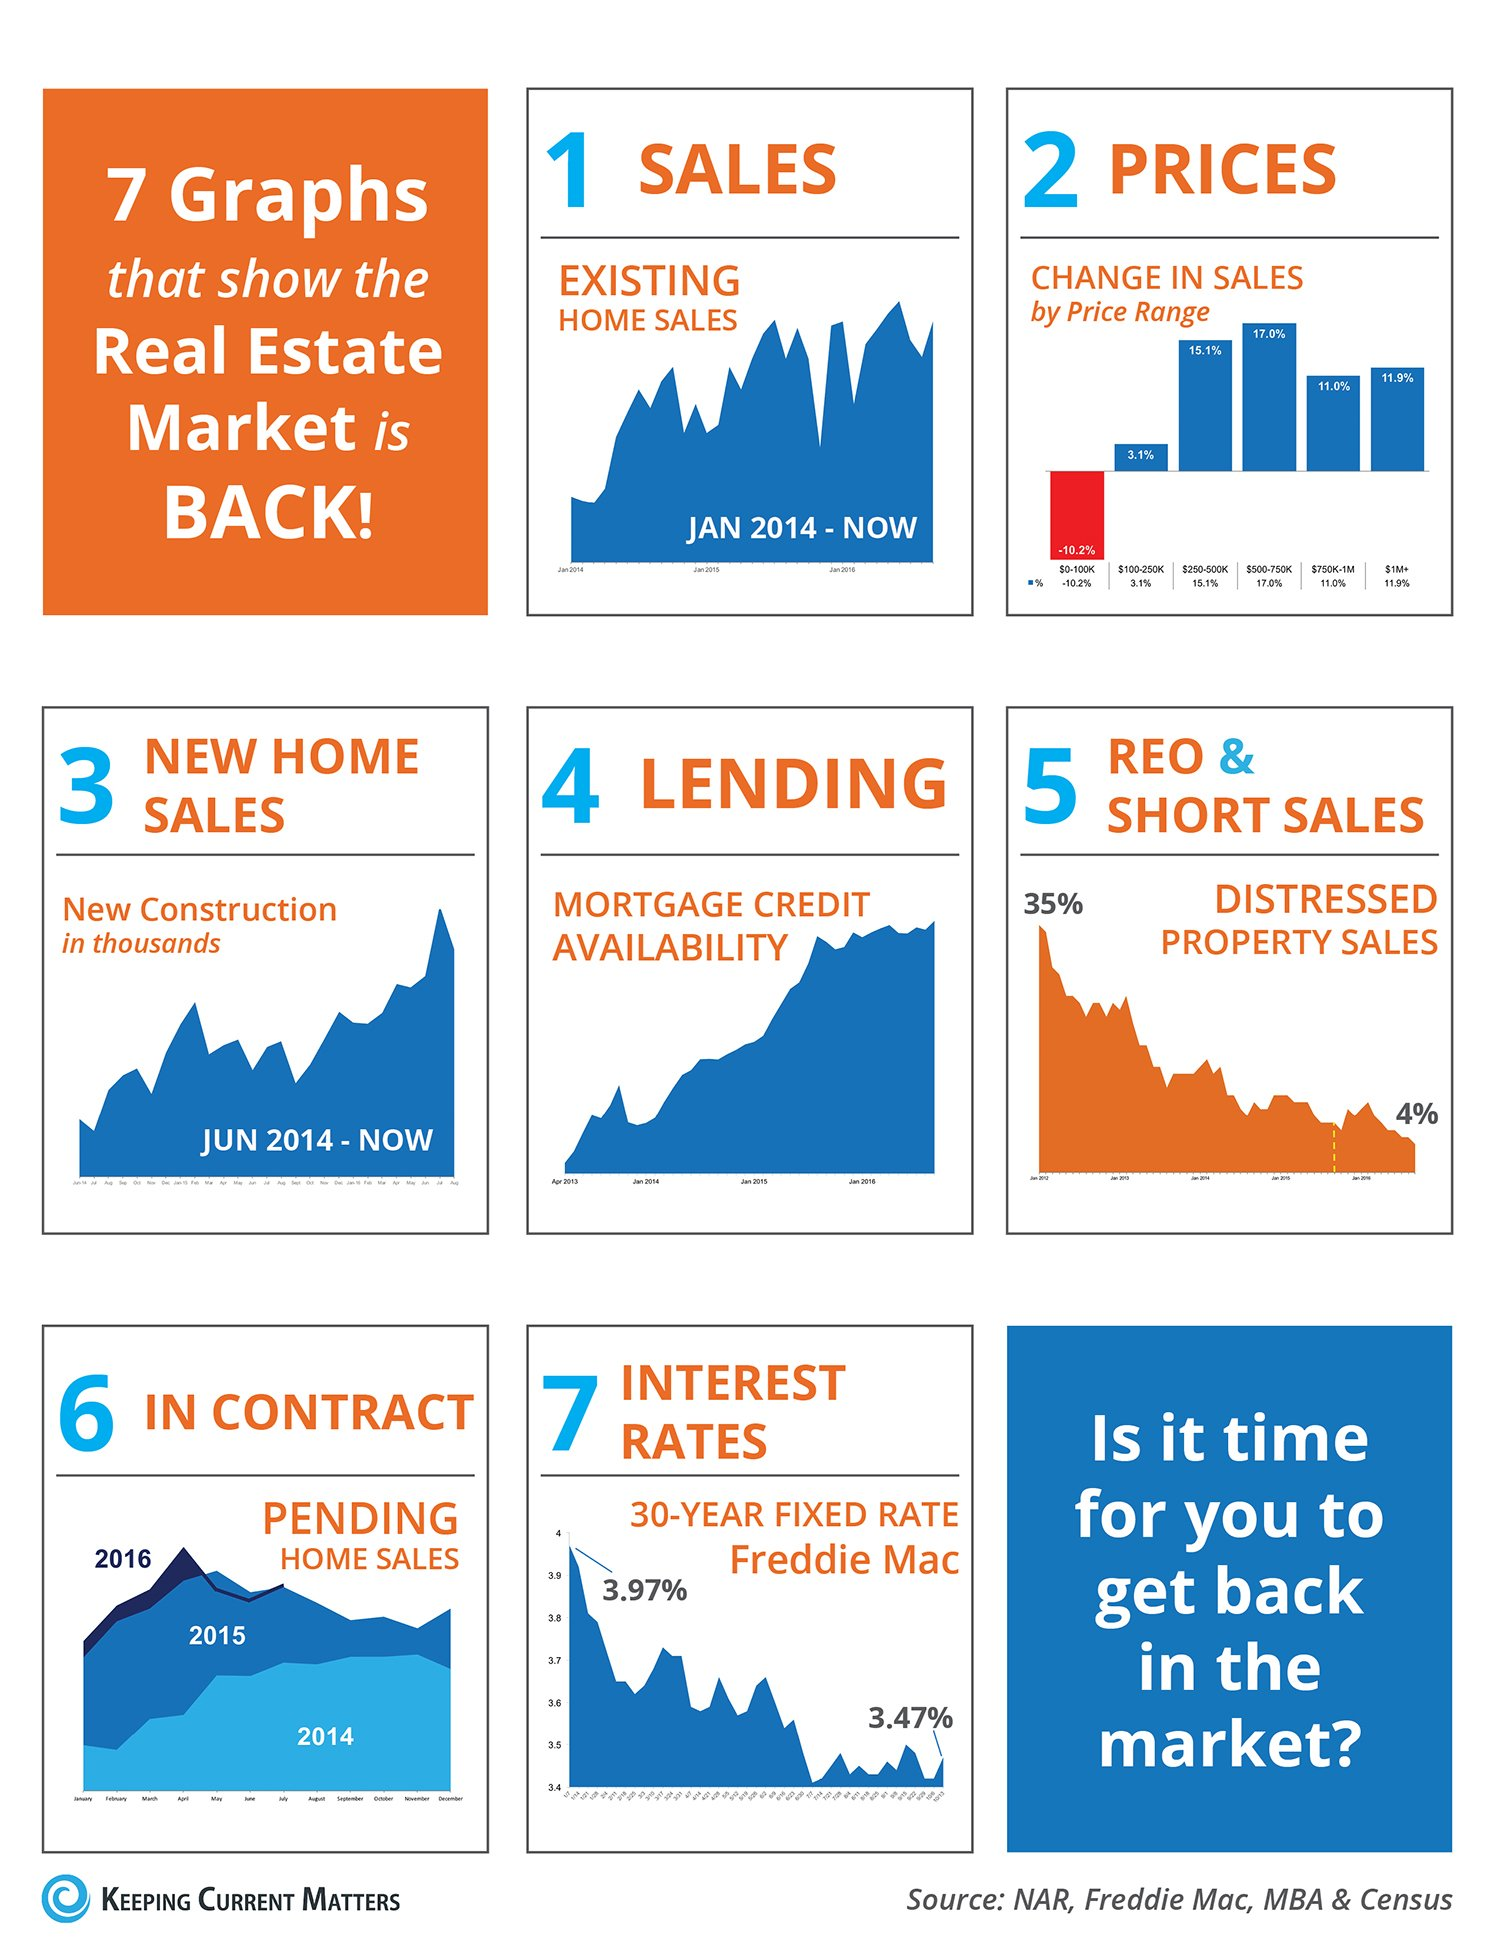 7 Graphs That Show the Real Estate Market is Back! [INFOGRAPHIC] | Keeping Current Matters